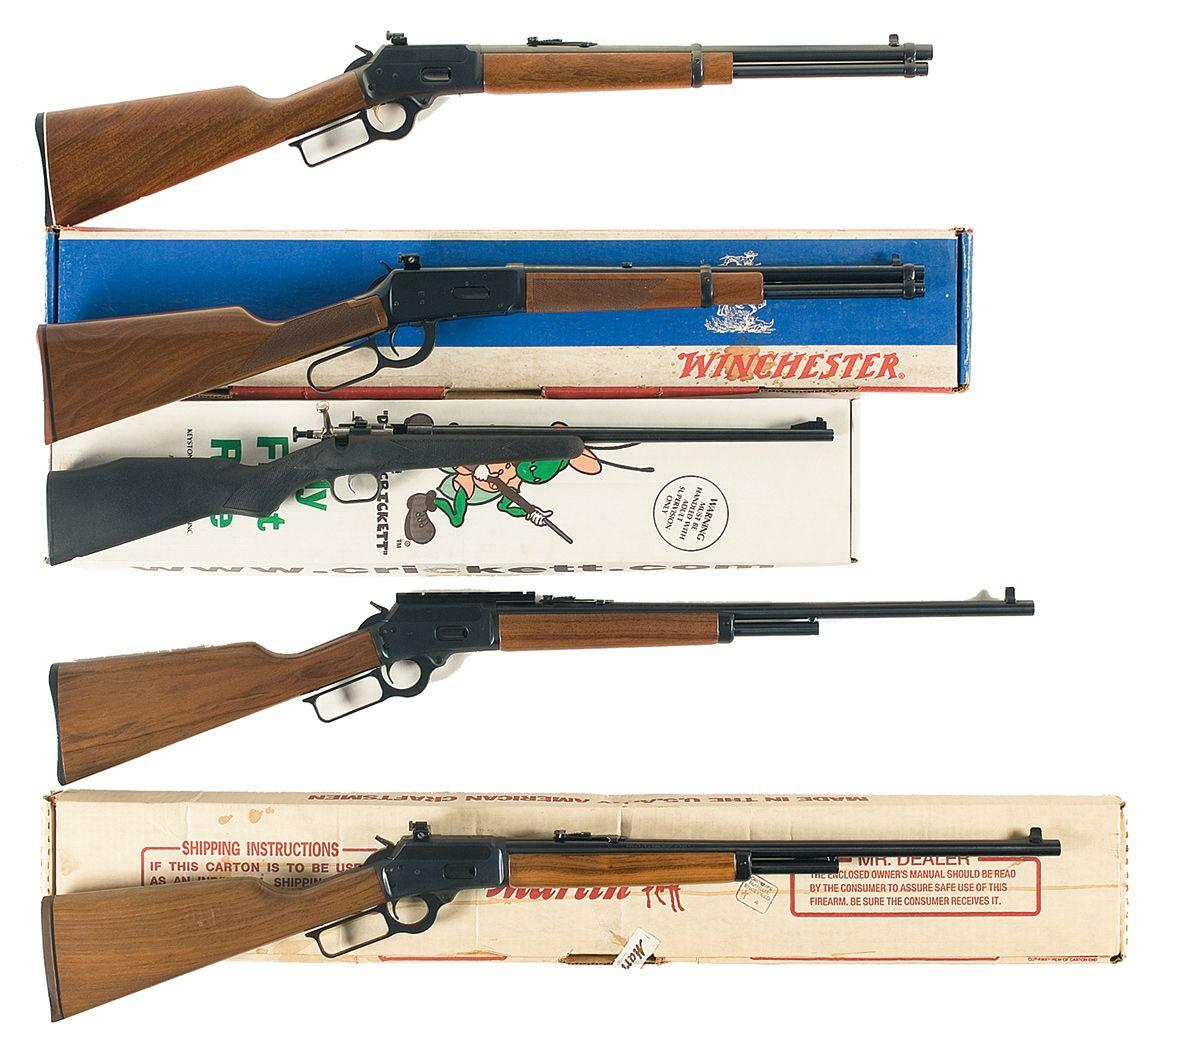 Five Rifles -A) Marlin Model 1894C Lever Action Carbine B) Winchester Model  94 Lever Action Carbine